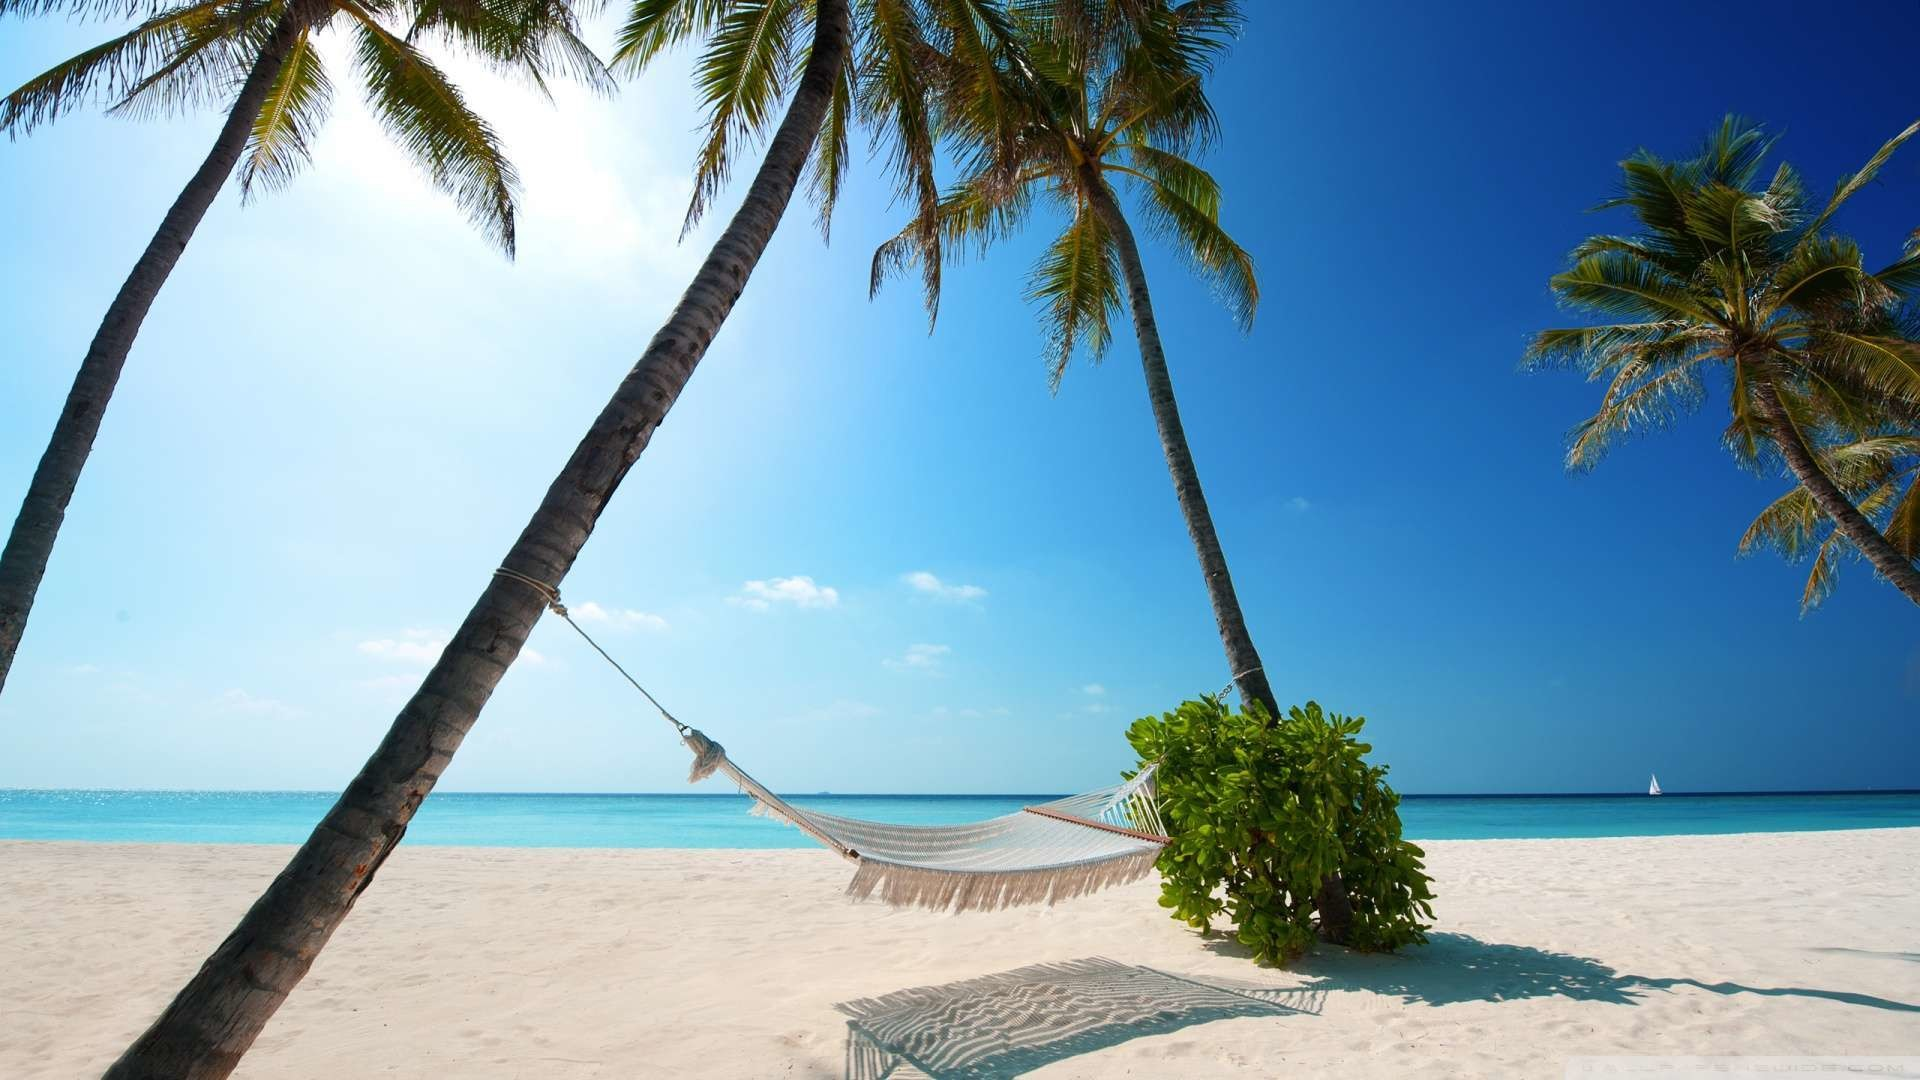 Wallpaper: Hammock On Tropical Beach Wallpaper 1080p HD. Upload at .